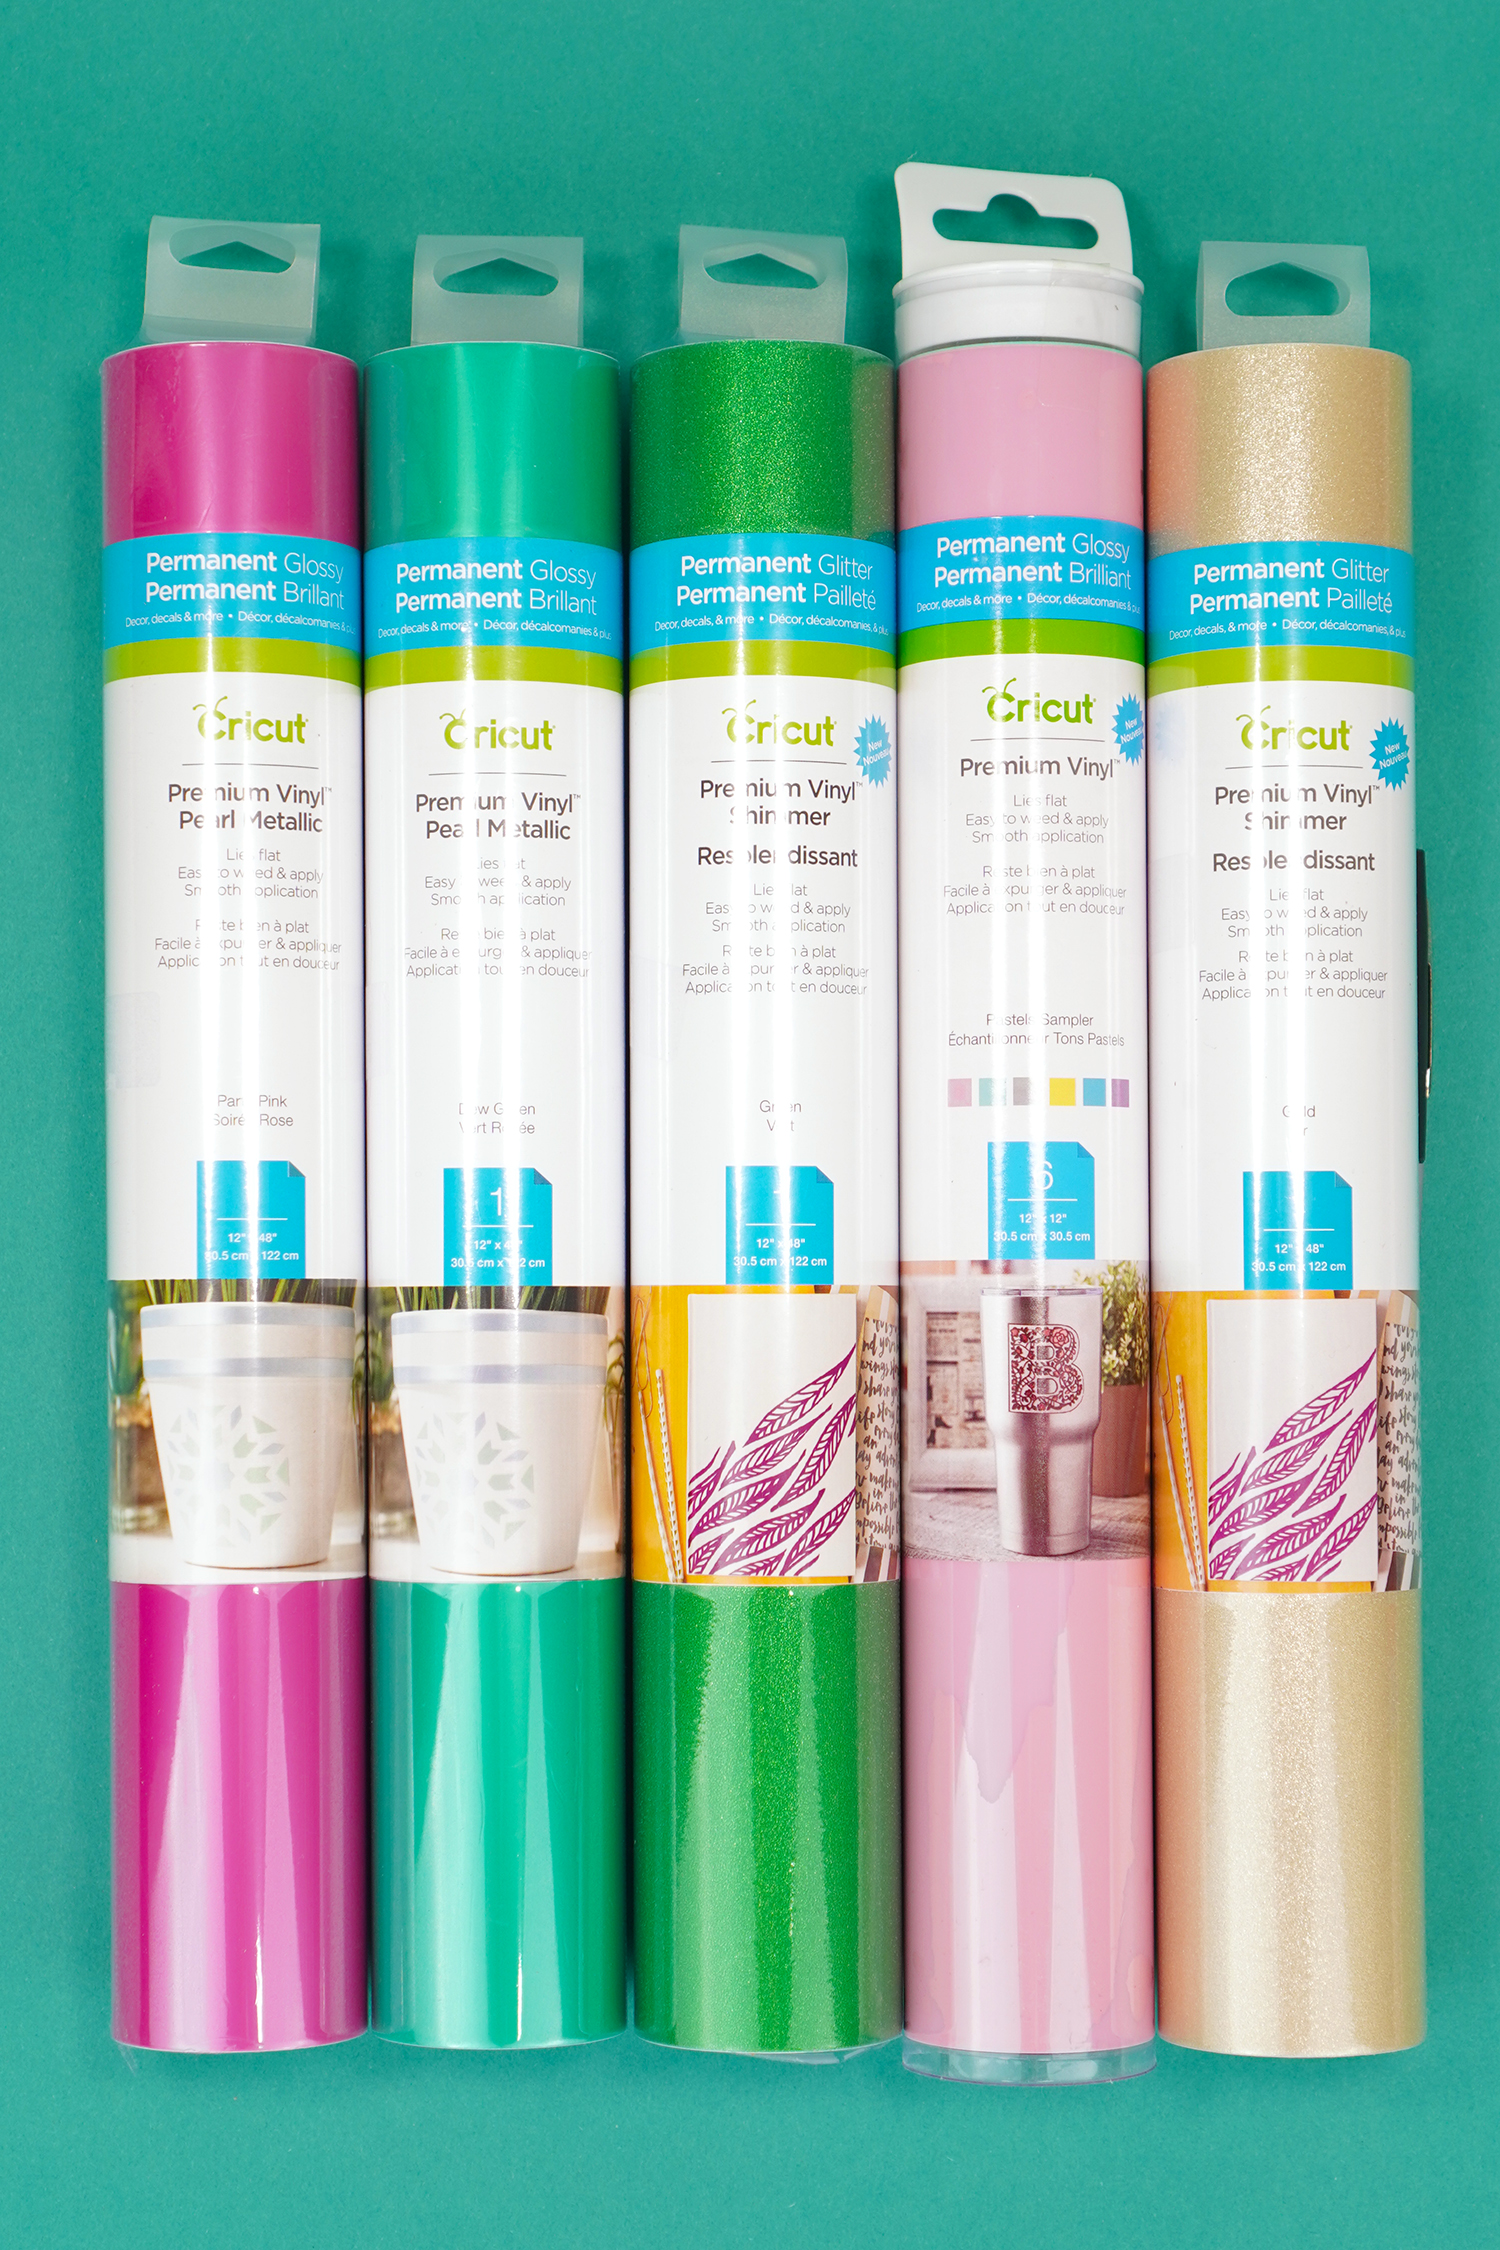 Cricut Vinyl rolls in packaging - pink, teal, green, baby pink, and gold on teal background